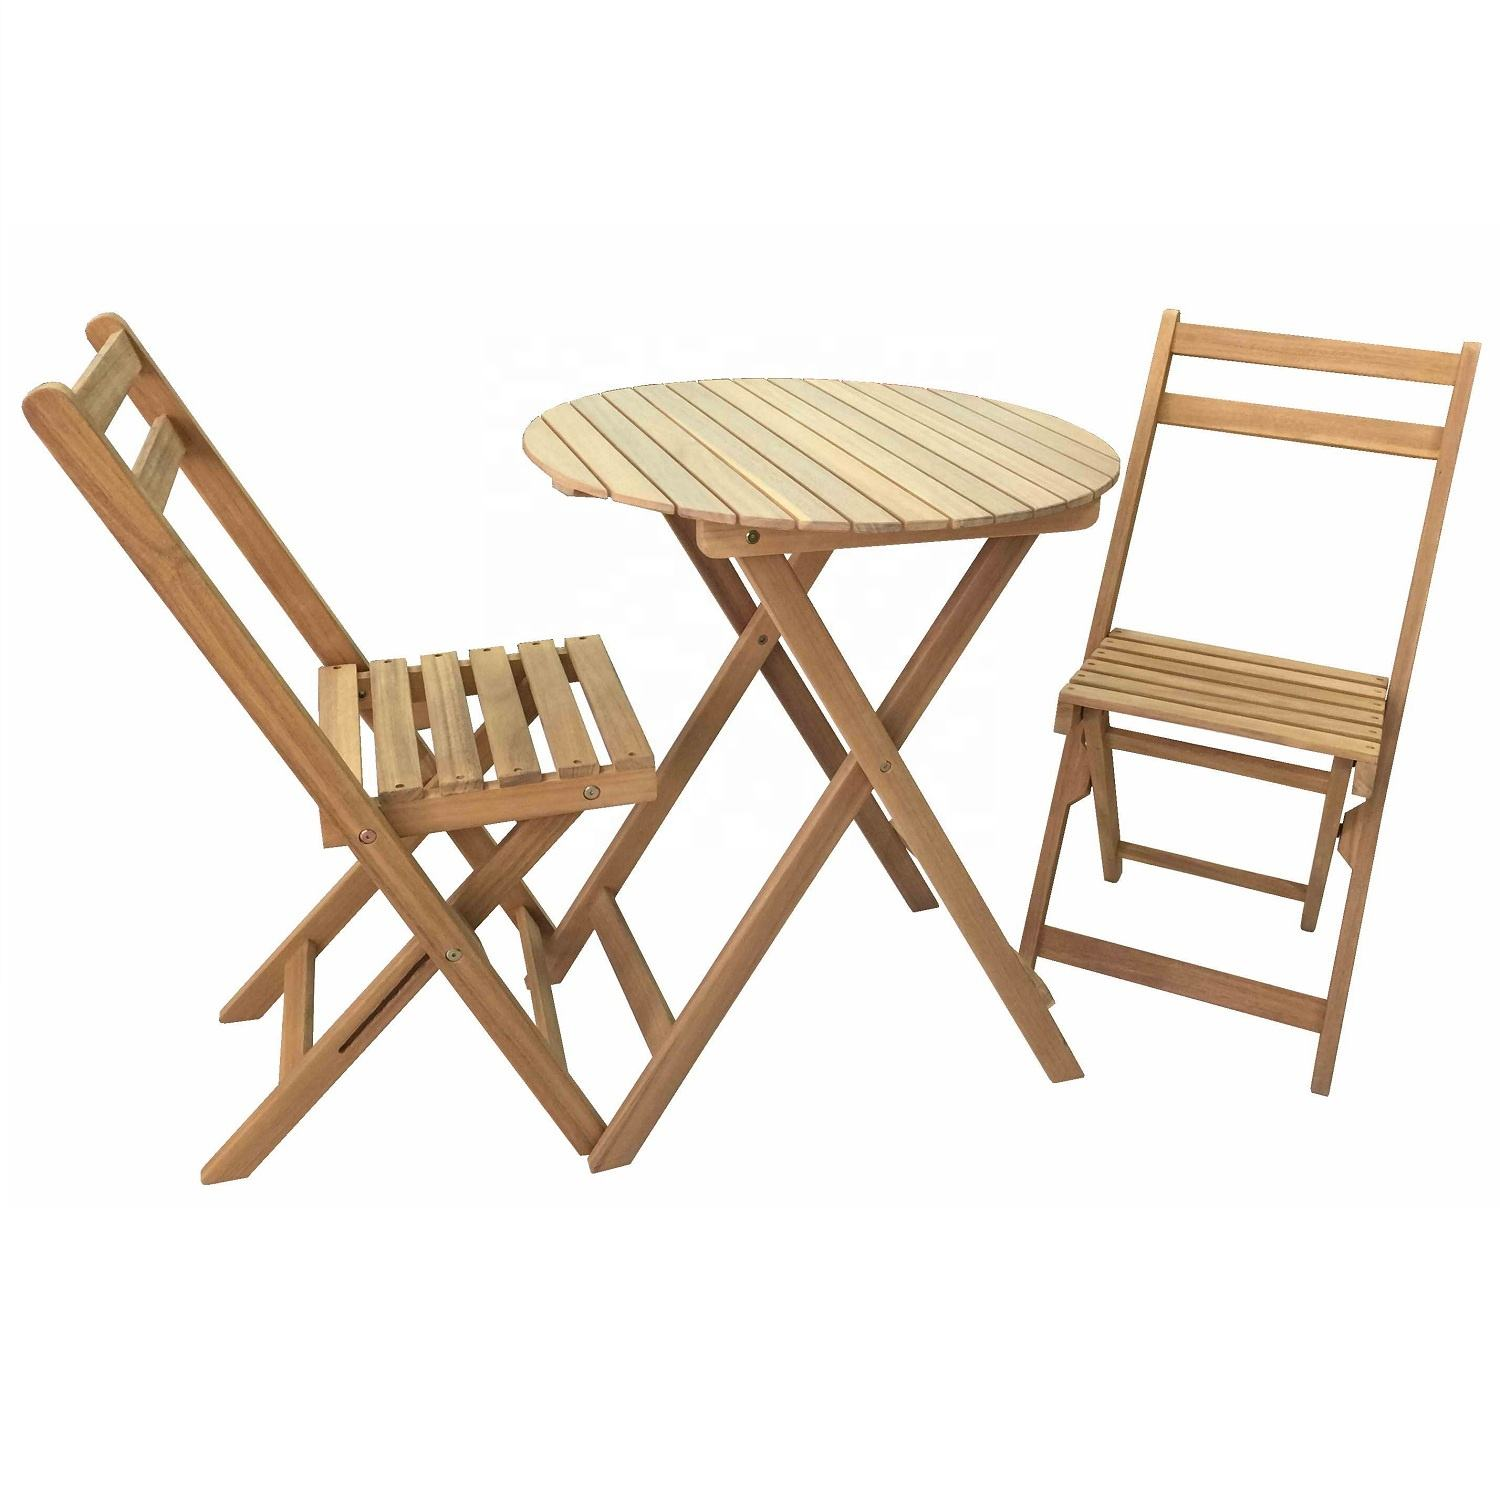 VIET NAM MODERN GARDEN WOODEN BISTRO SET OUTDOOR IN TEAK LOOK